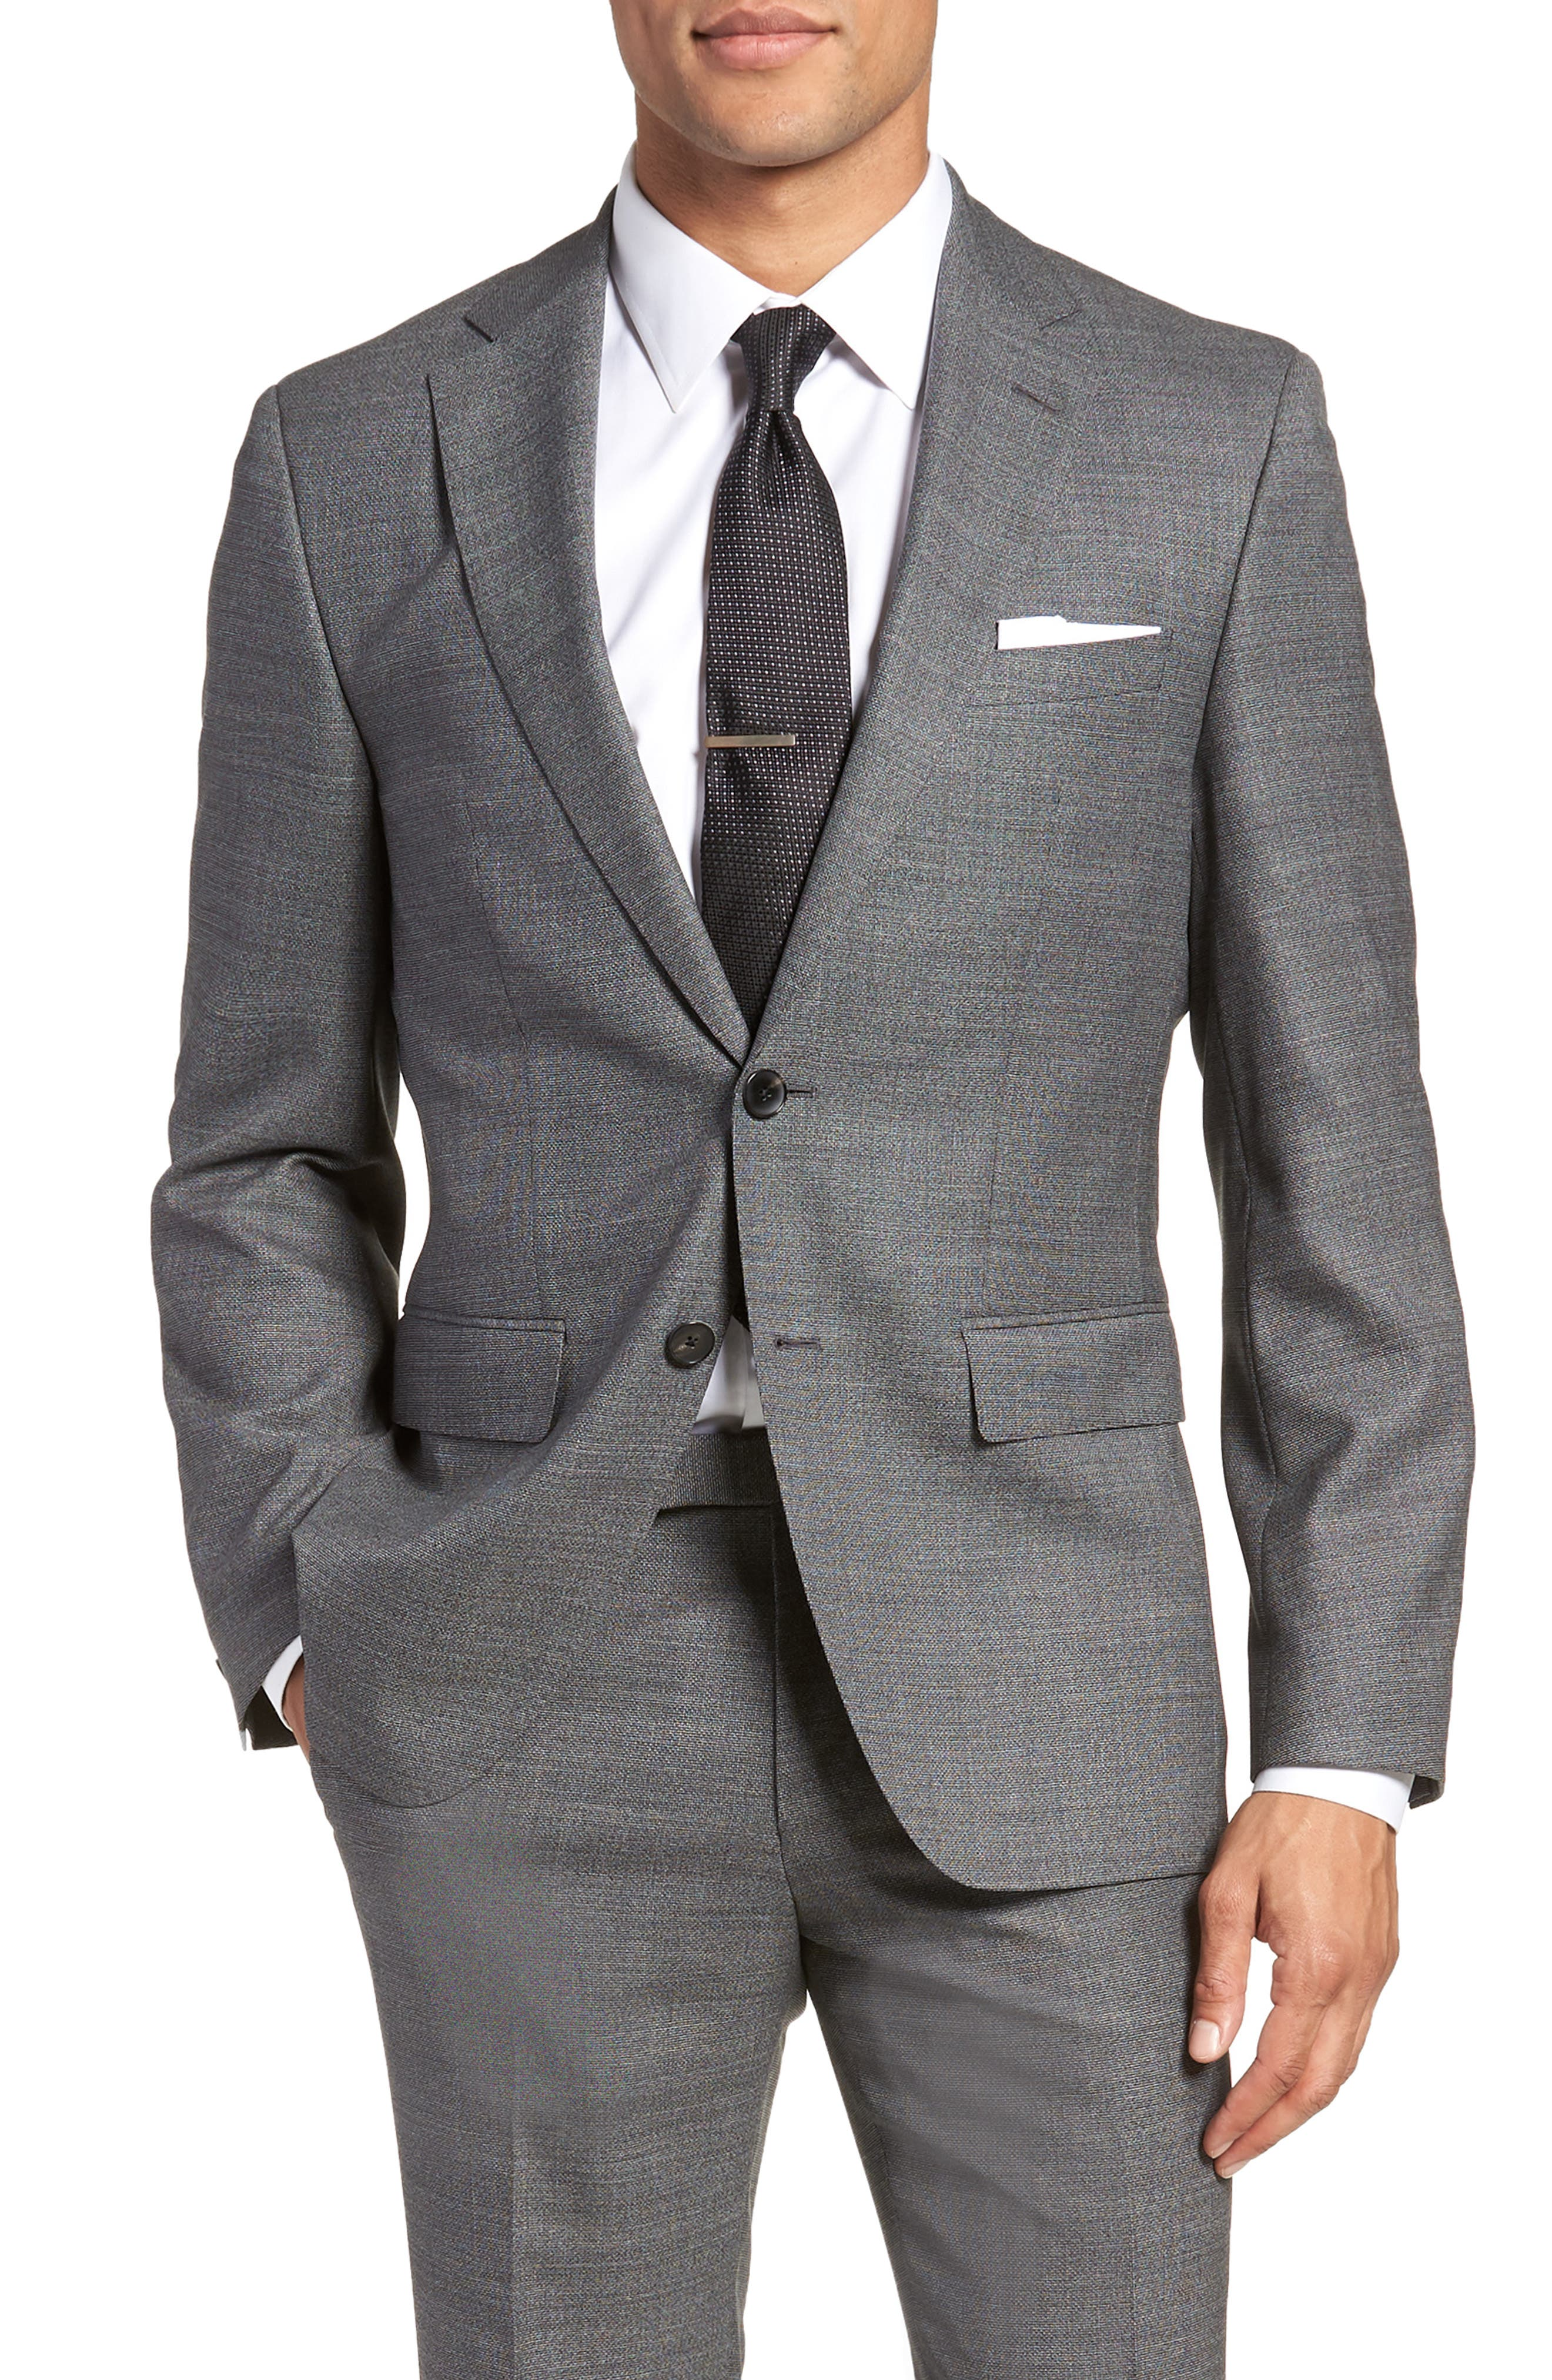 Johnstons/Lenon Classic Fit Solid Wool Suit,                             Alternate thumbnail 5, color,                             020